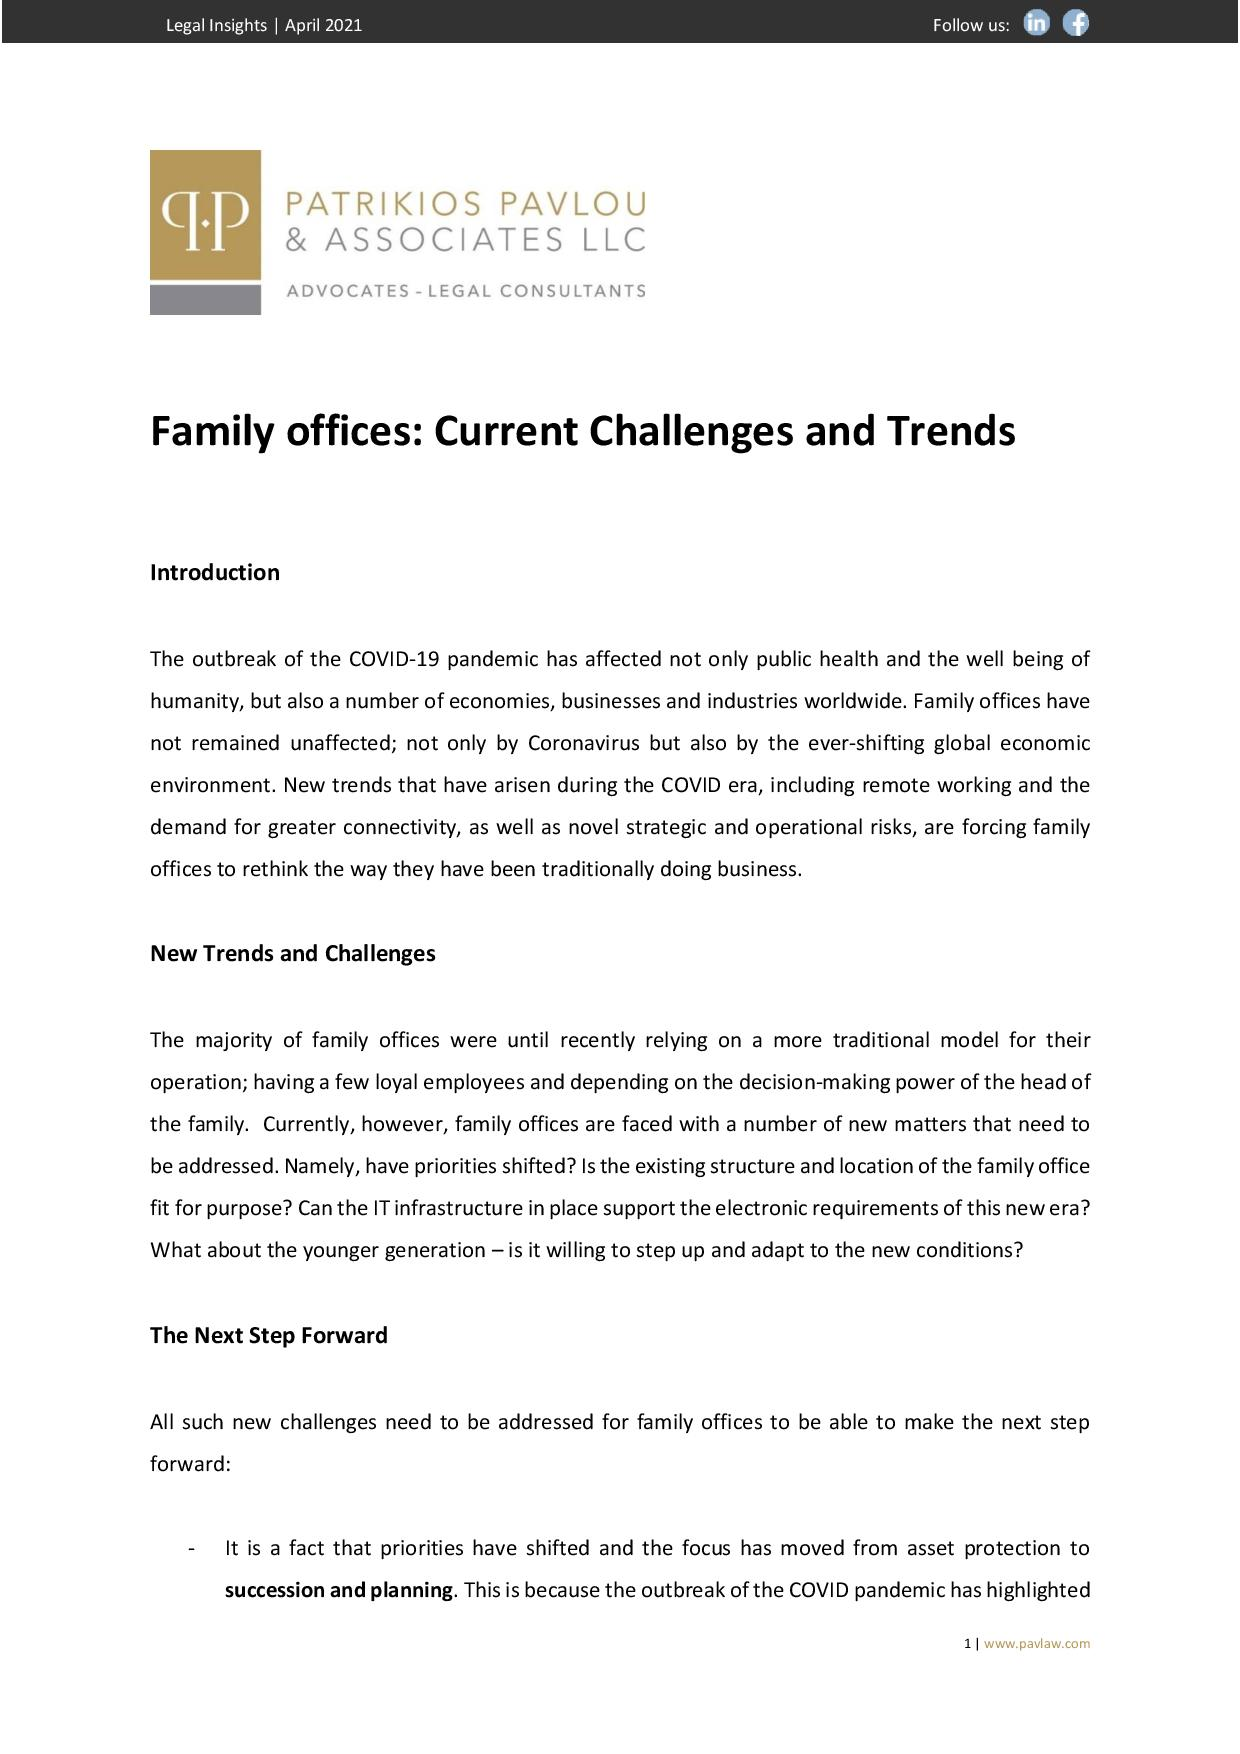 Patrikios Pavlou & Associates LLC: Family Offices: Current Challenges and Trends